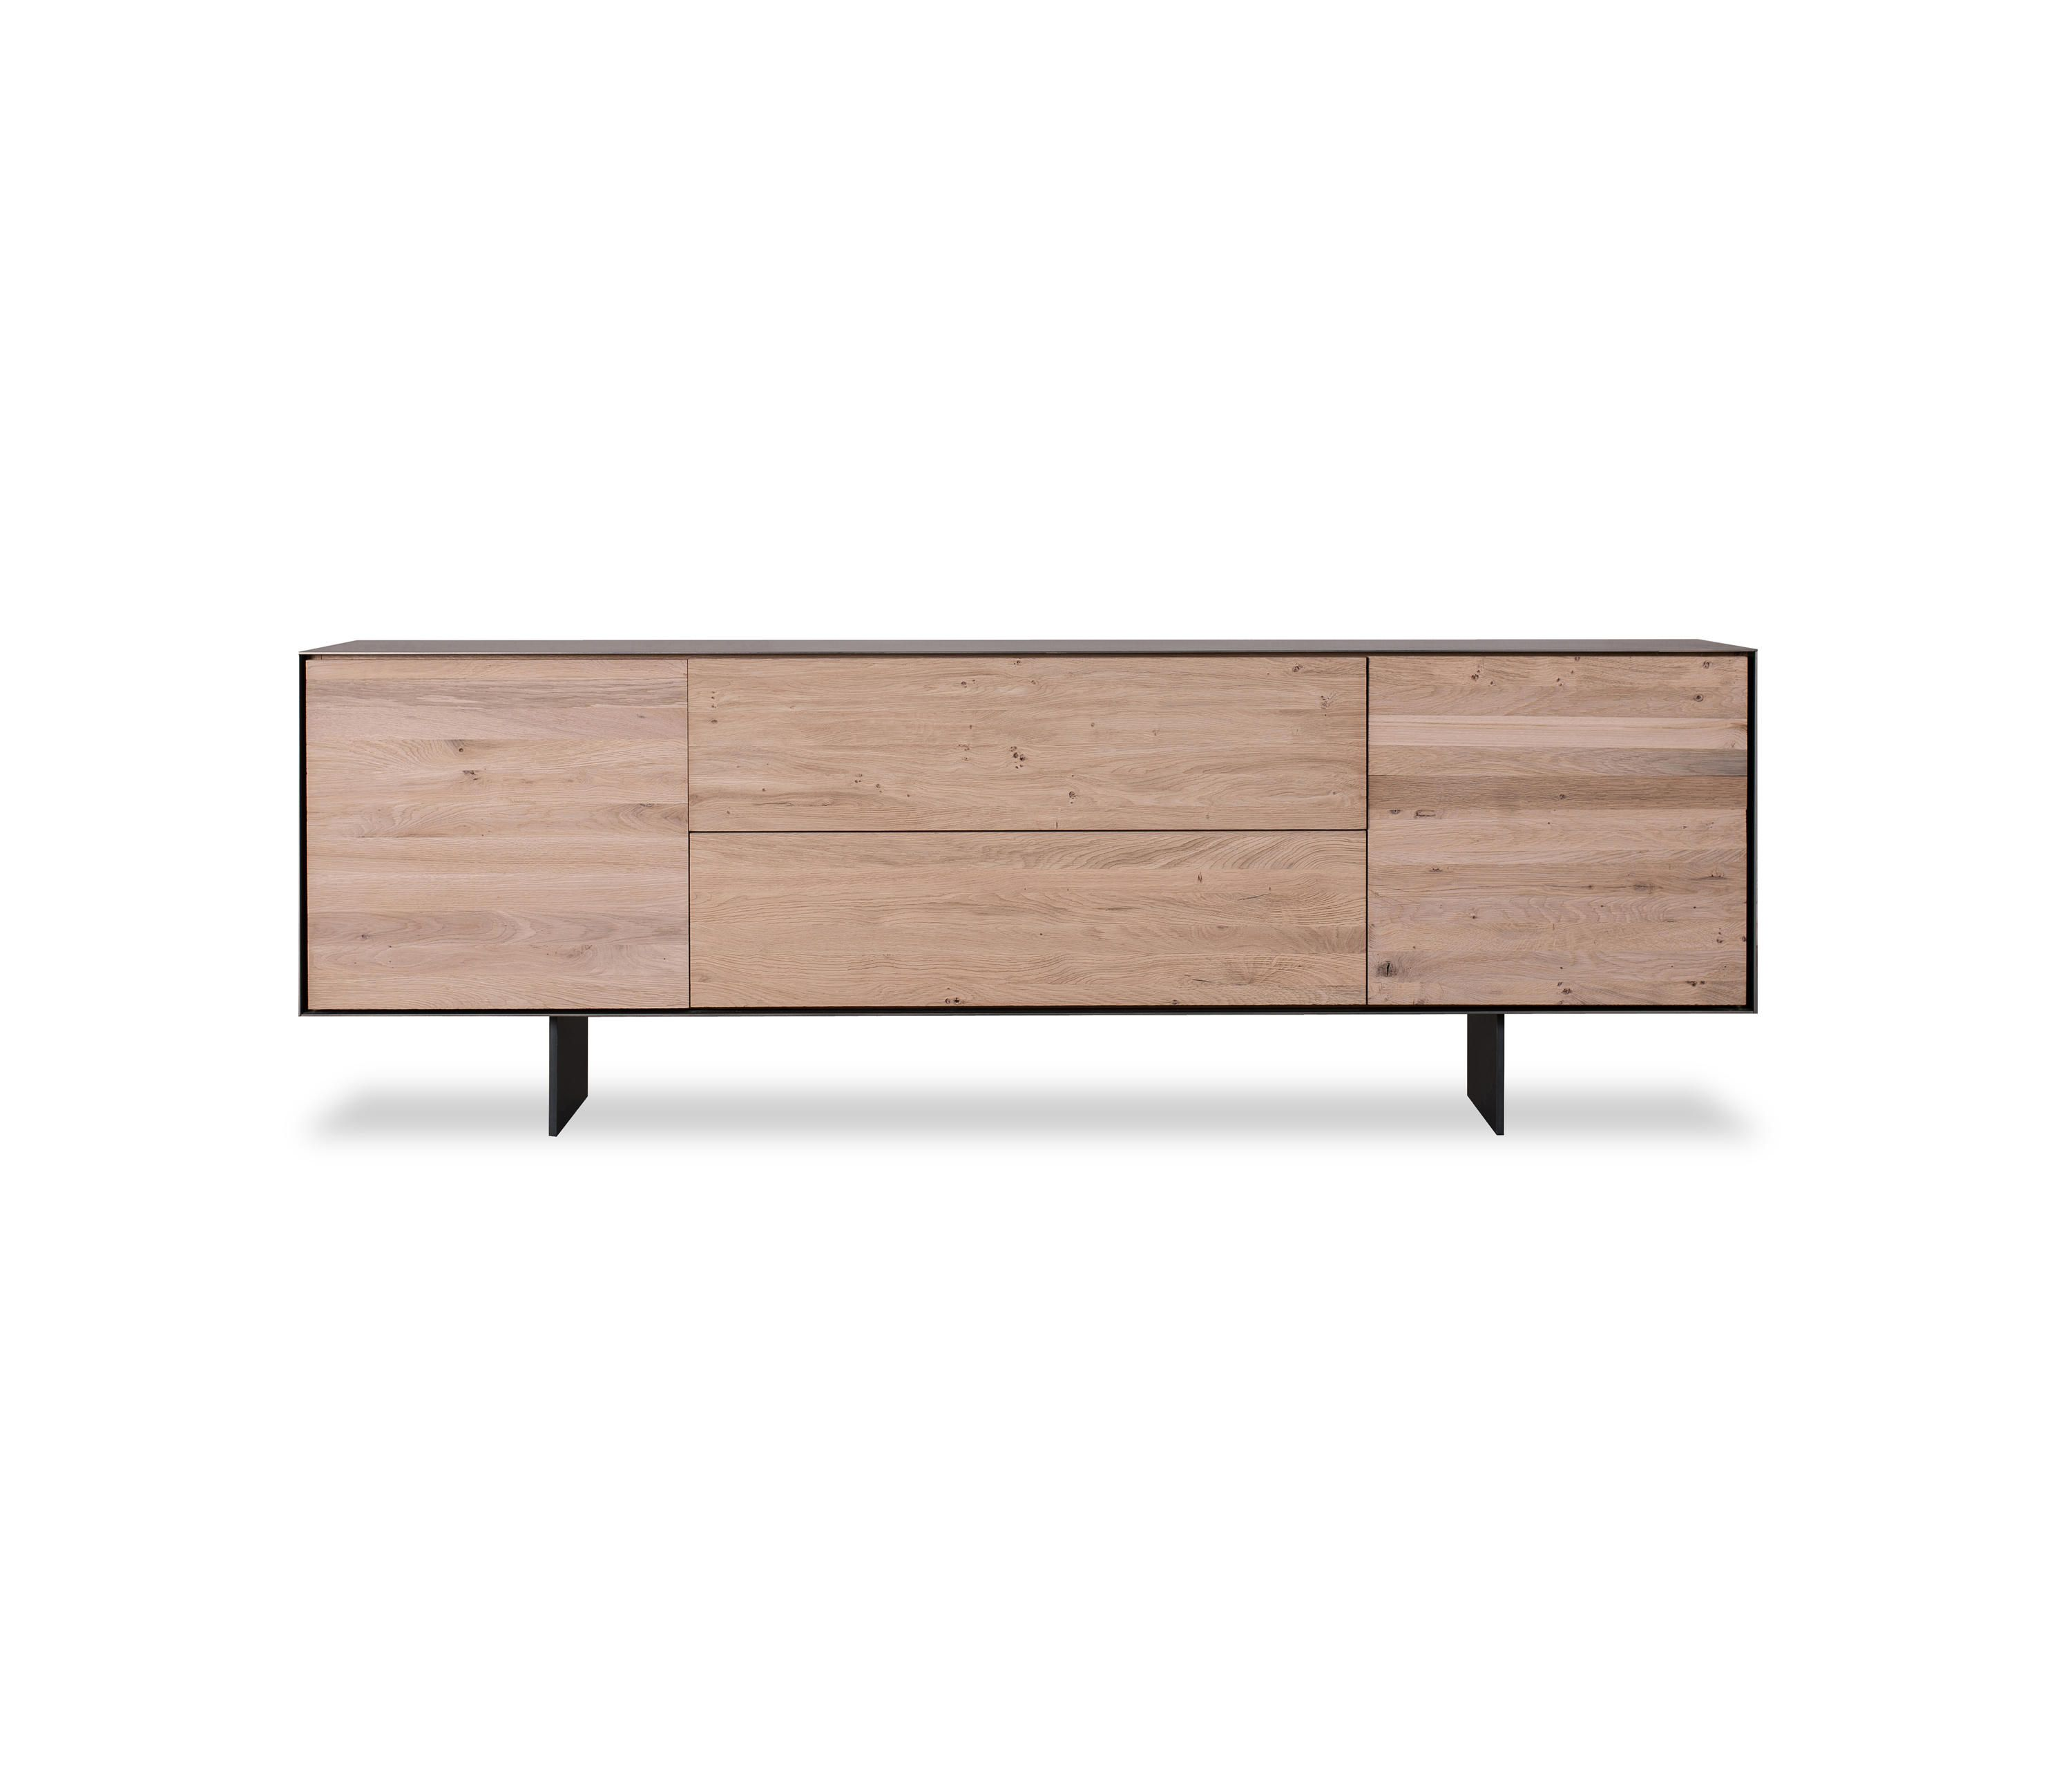 Rialto Fly By Riva 1920 Sideboards Sideboard Pinterest # Meuble Tv Riva